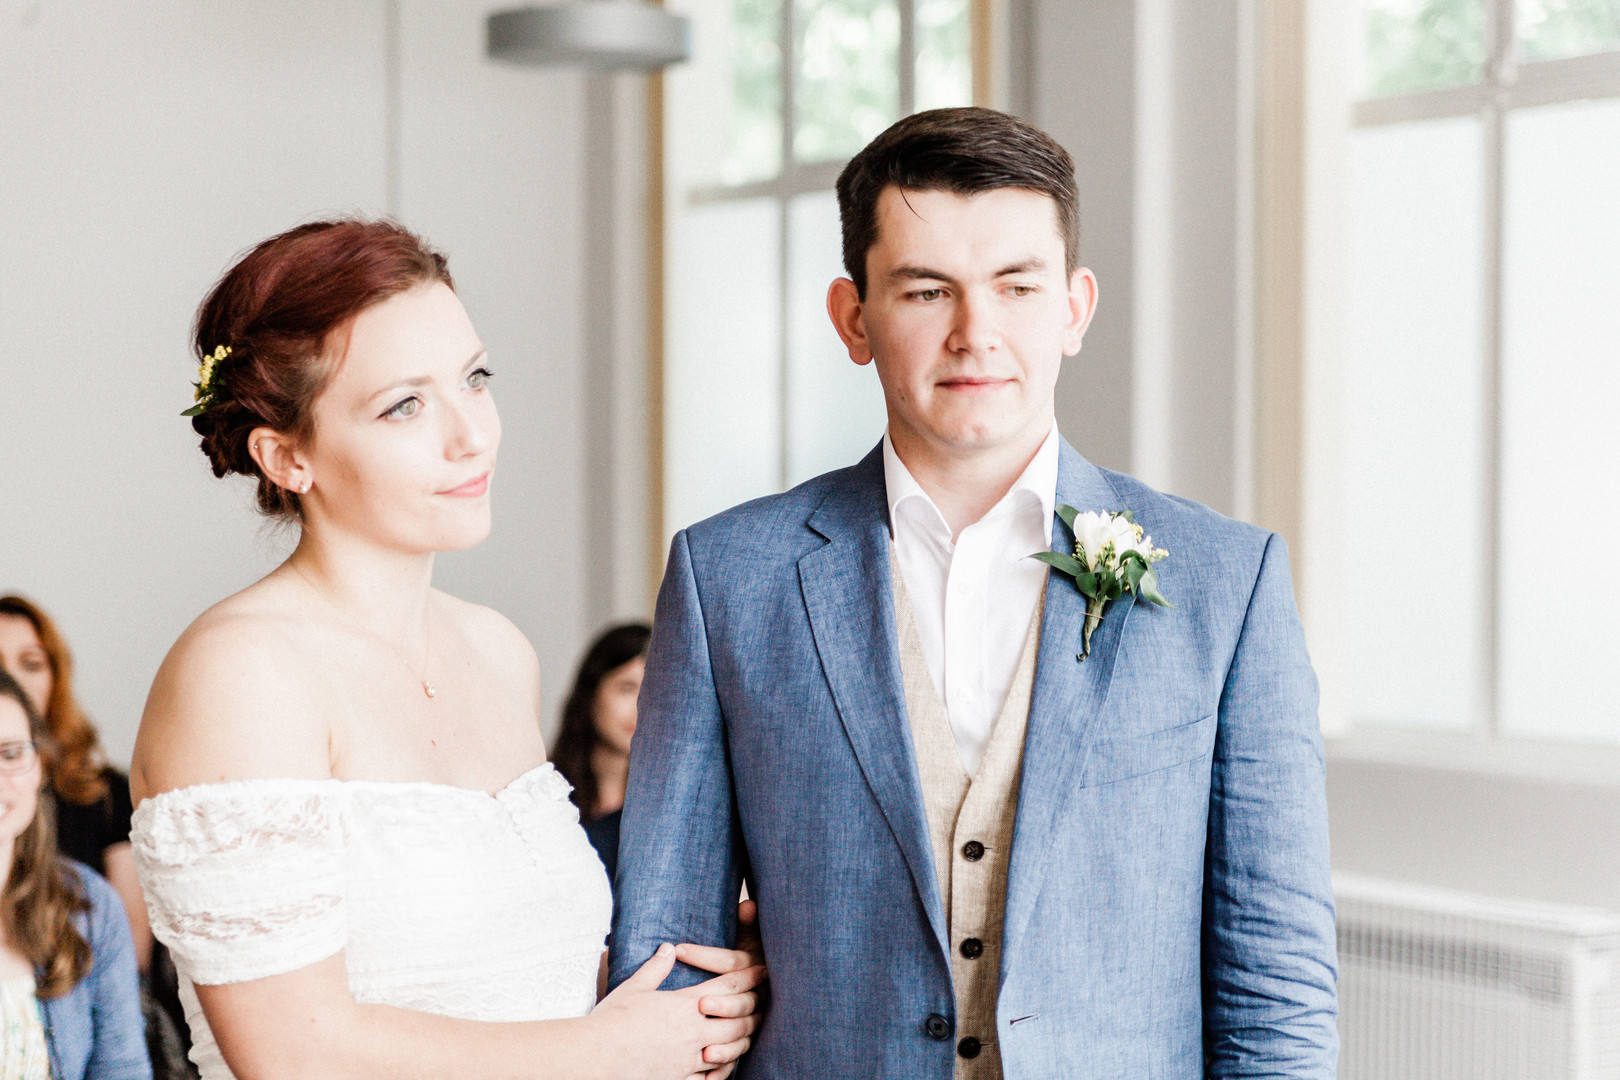 Relaxed wedding ceremony in Aldershot, Hampshire